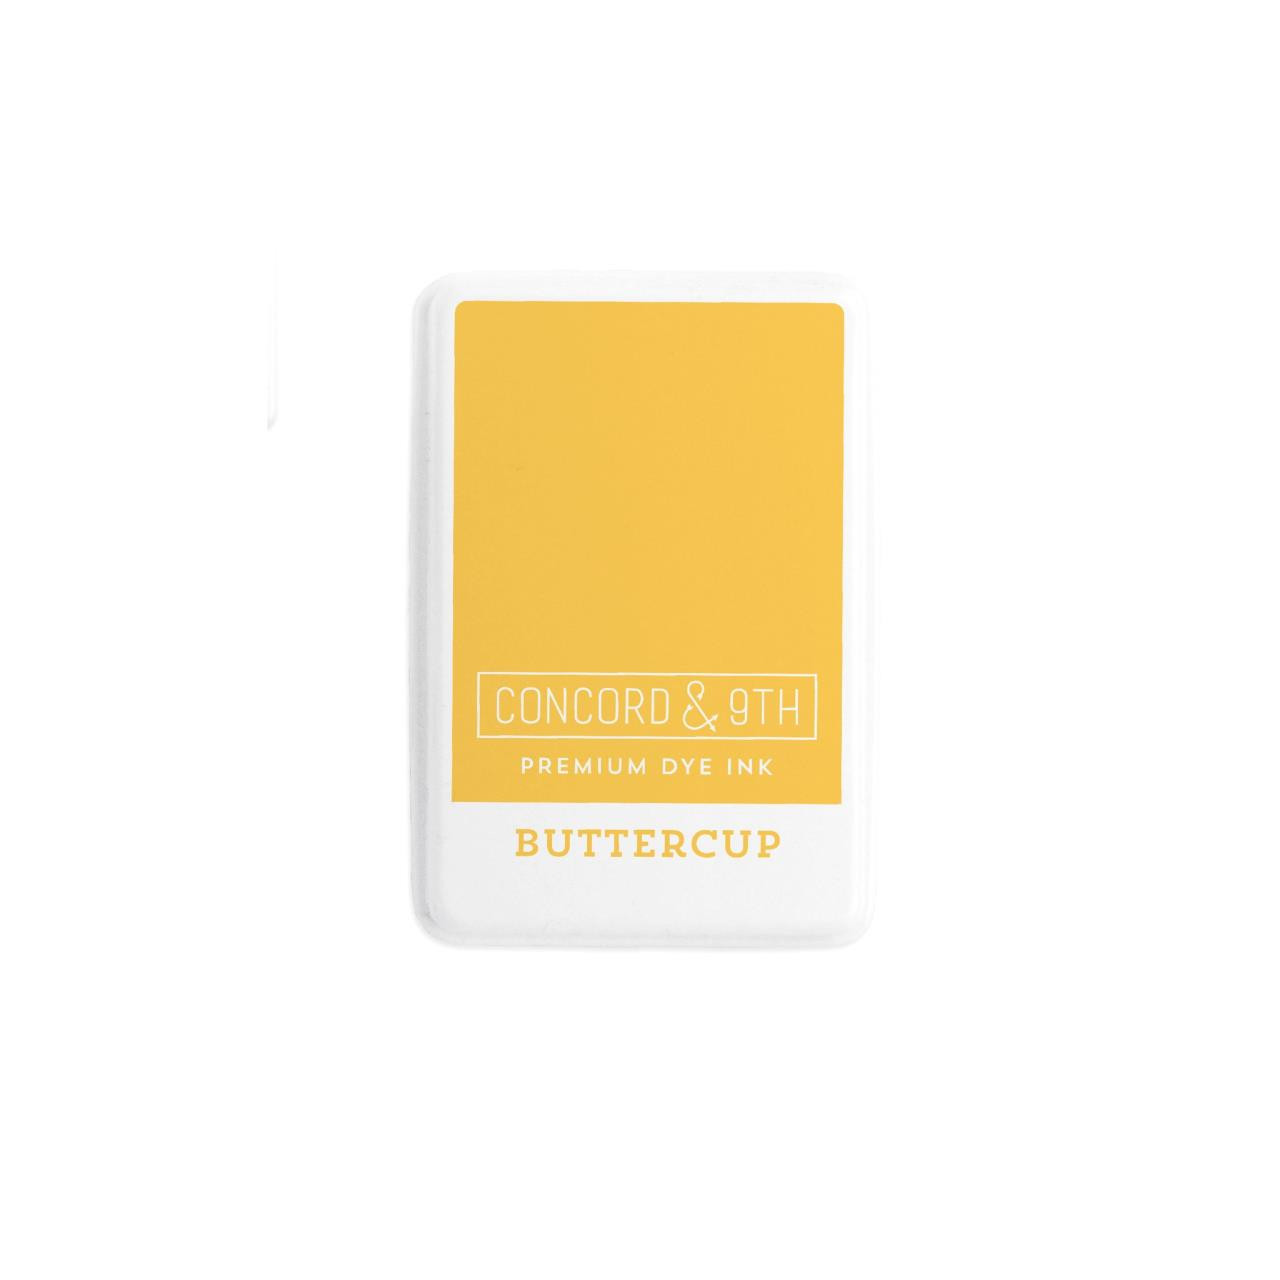 Buttercup, Concord & 9th Premium Dye Ink Pads - 090222401976